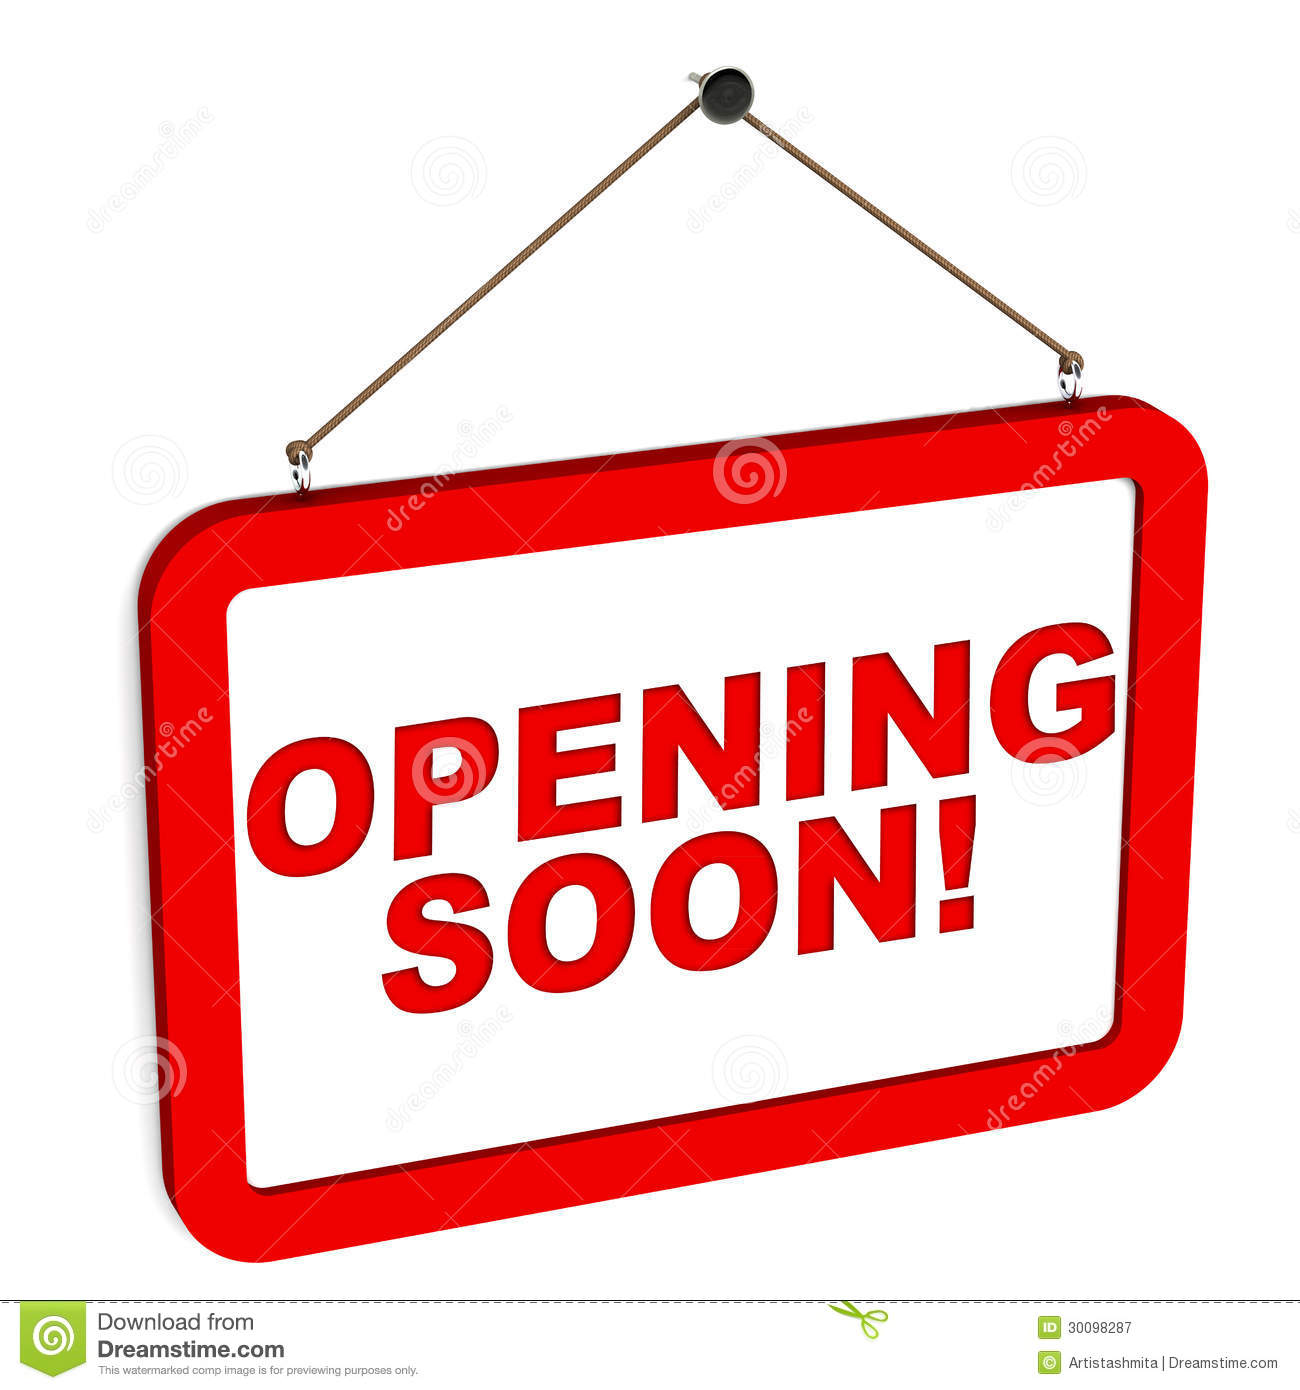 Opening Soon Clipart.